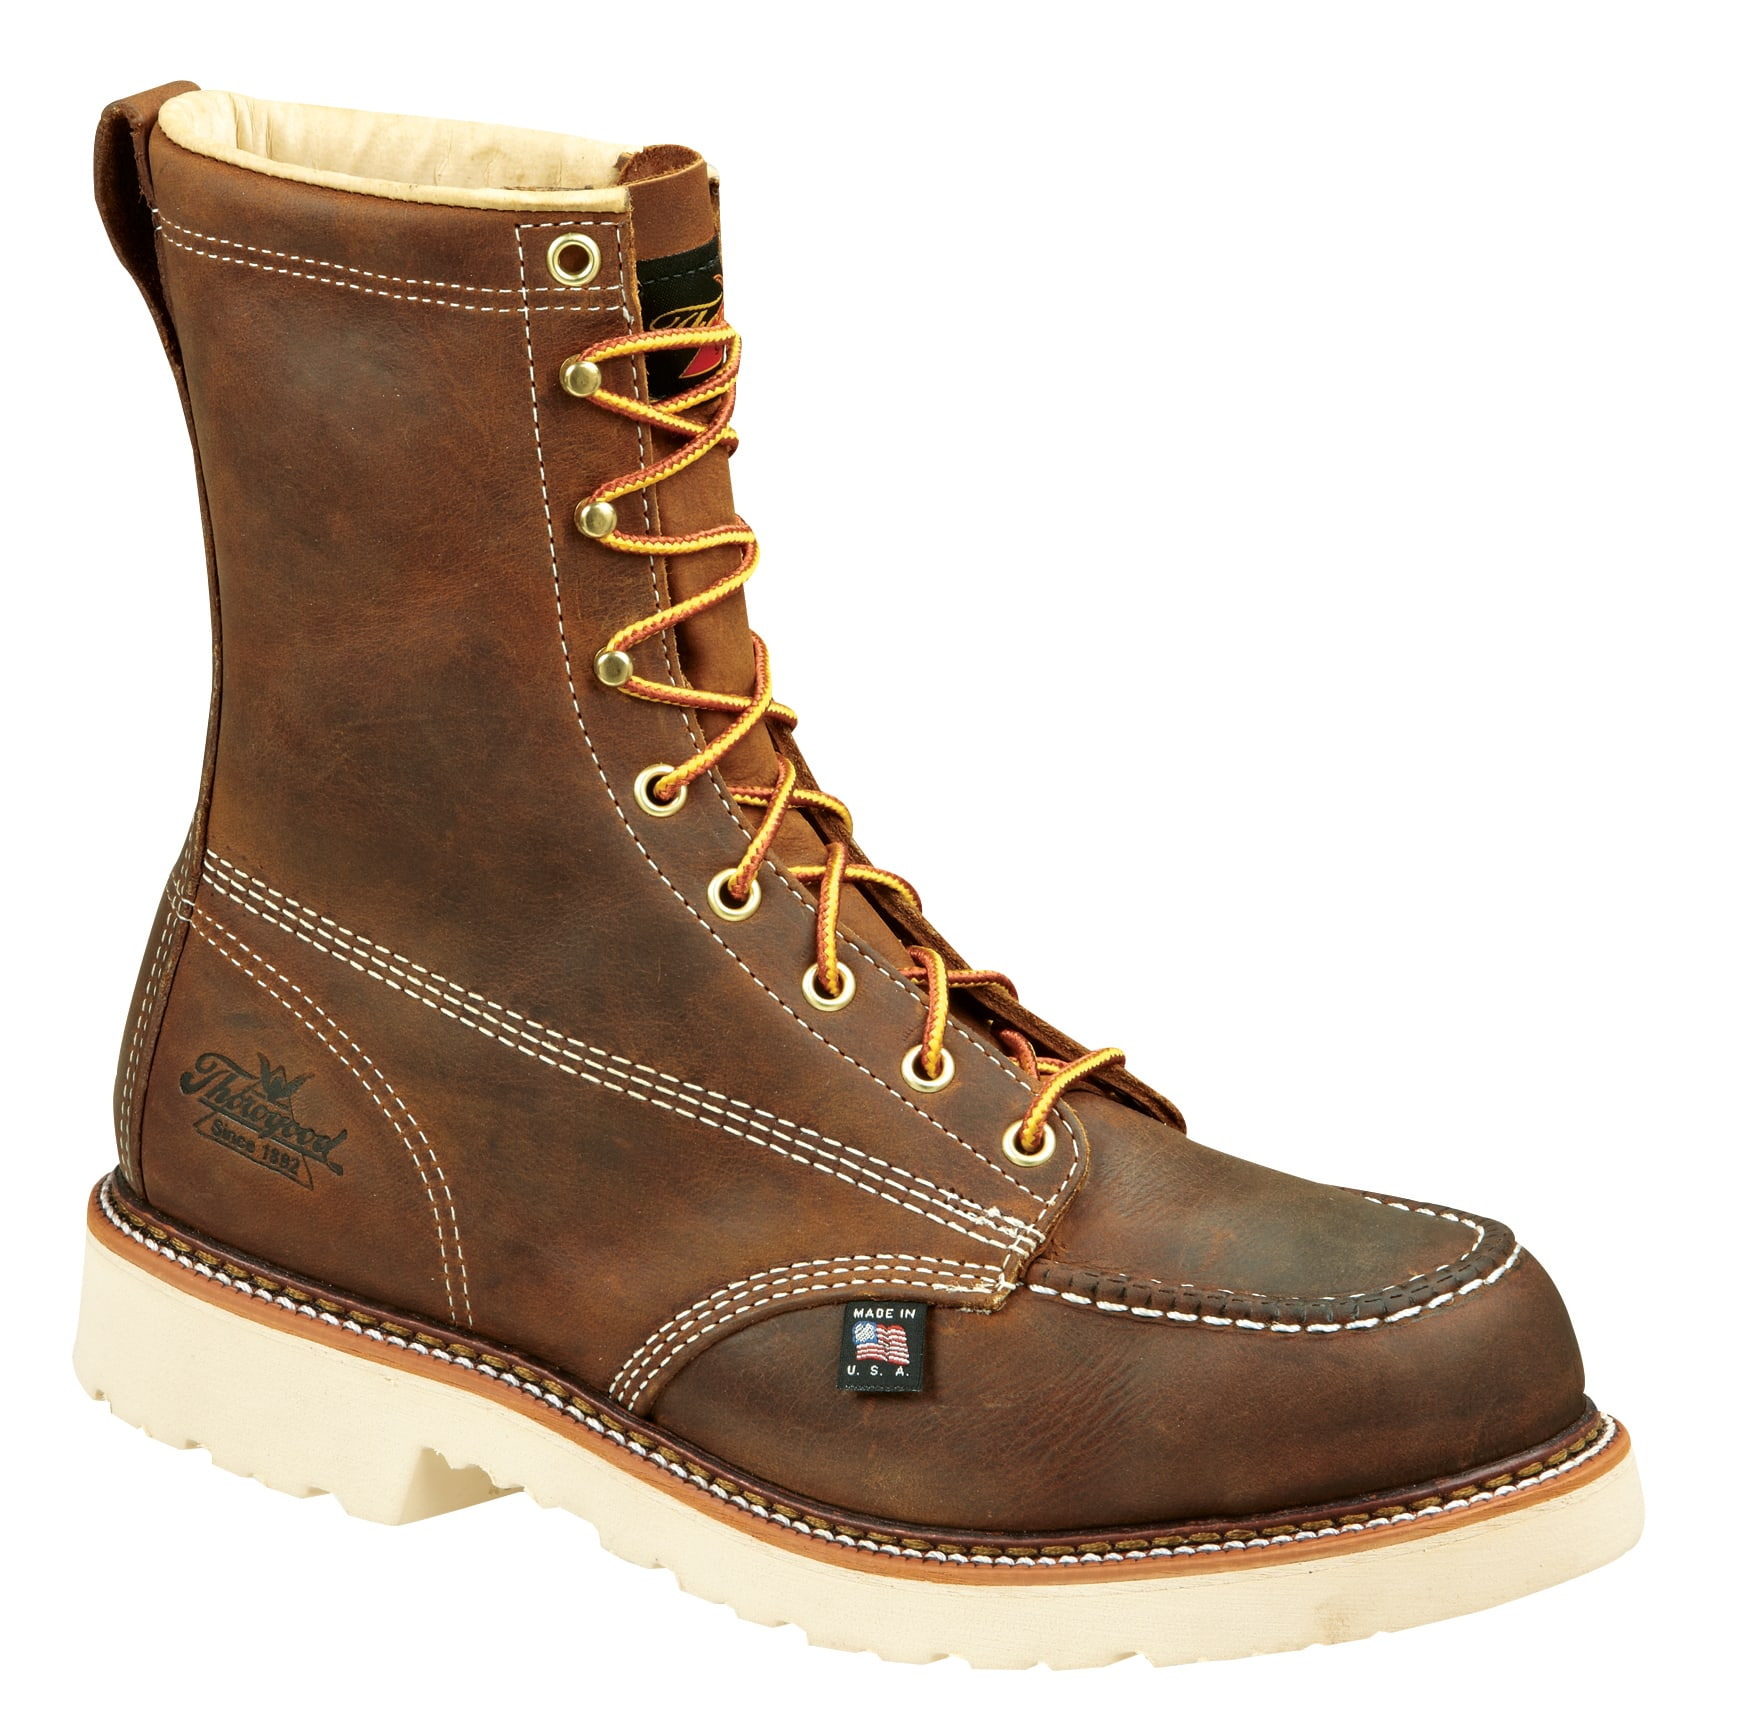 Thorogood Steel Toe Boots 804 4379 Fr Outlet